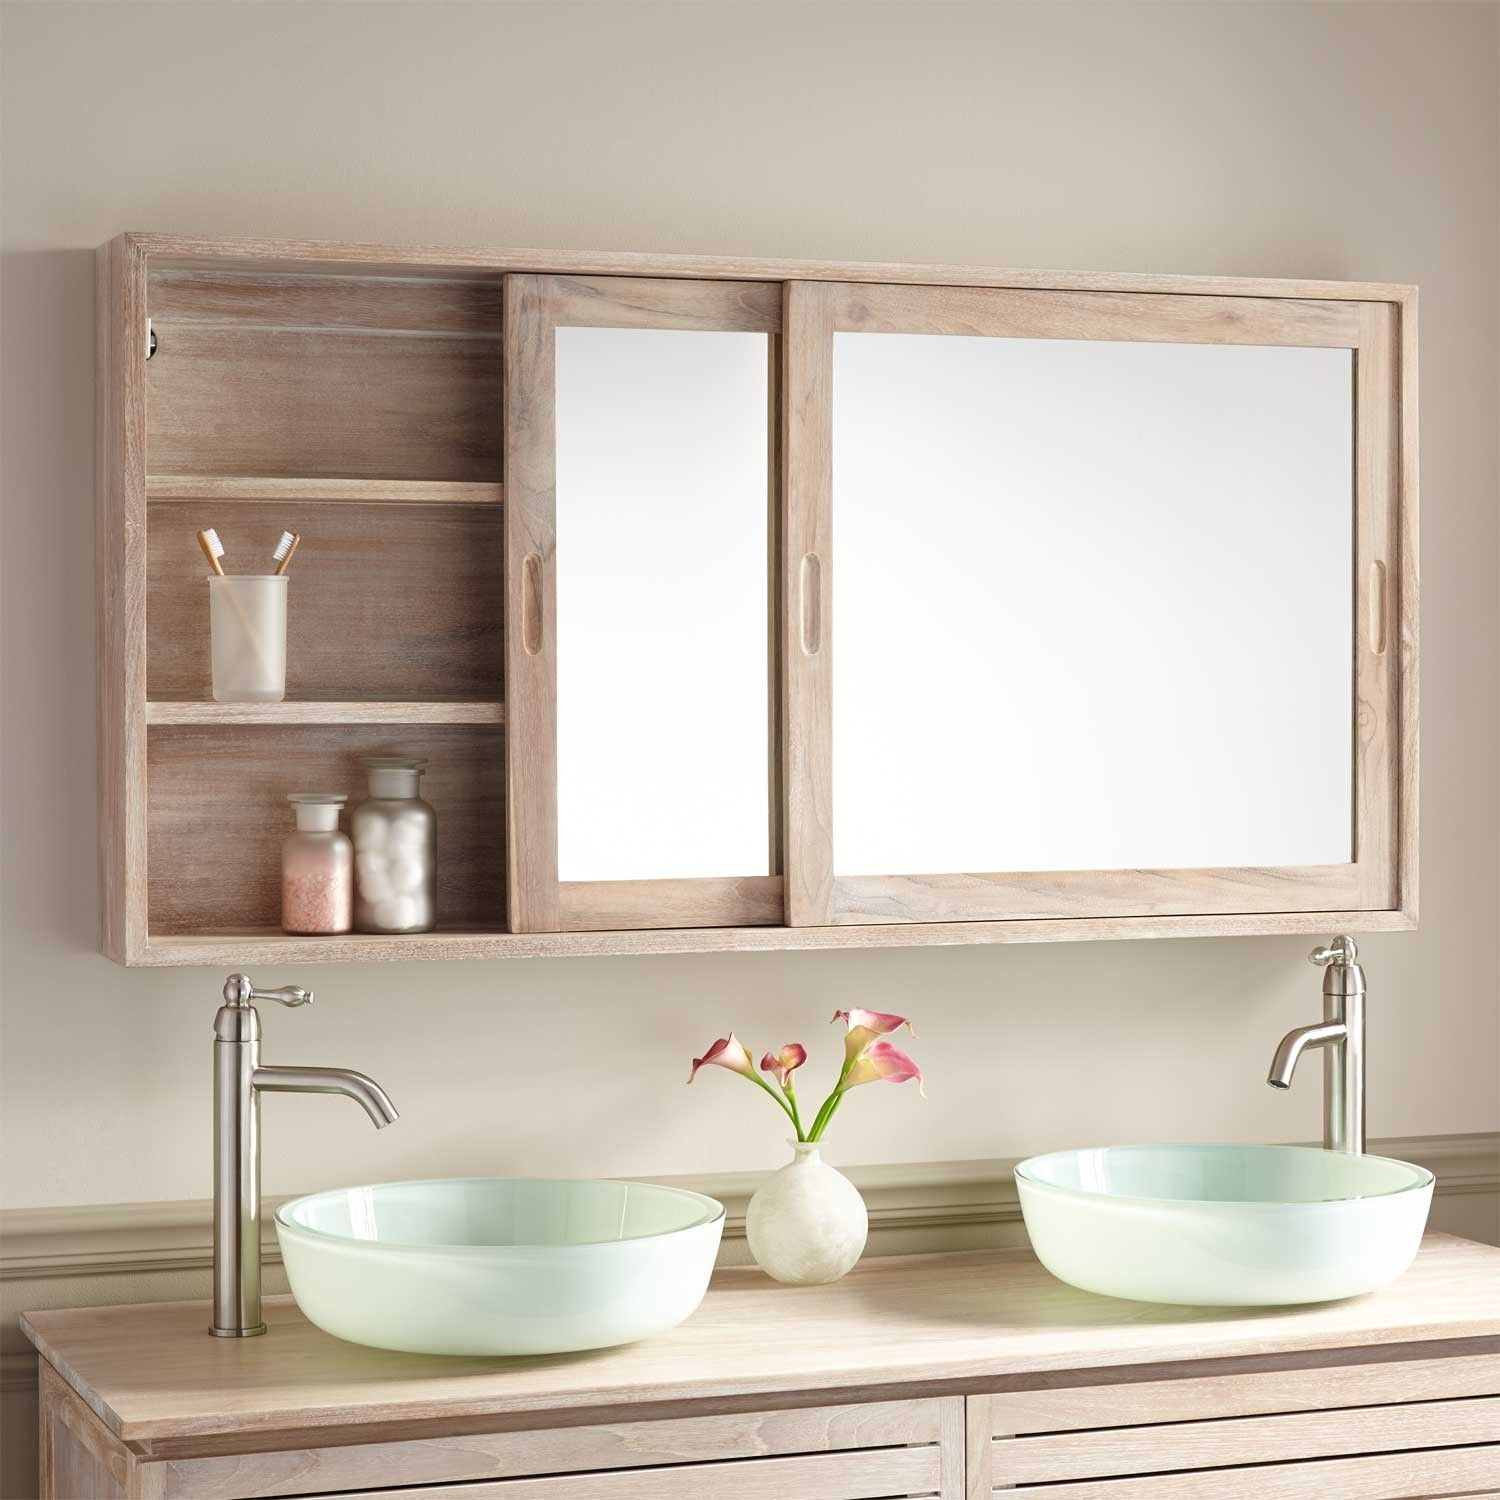 Bathroom Cupboard Mirror Best 25 43 Bathroom Cabinet With Mirror Ideas On Pinterest